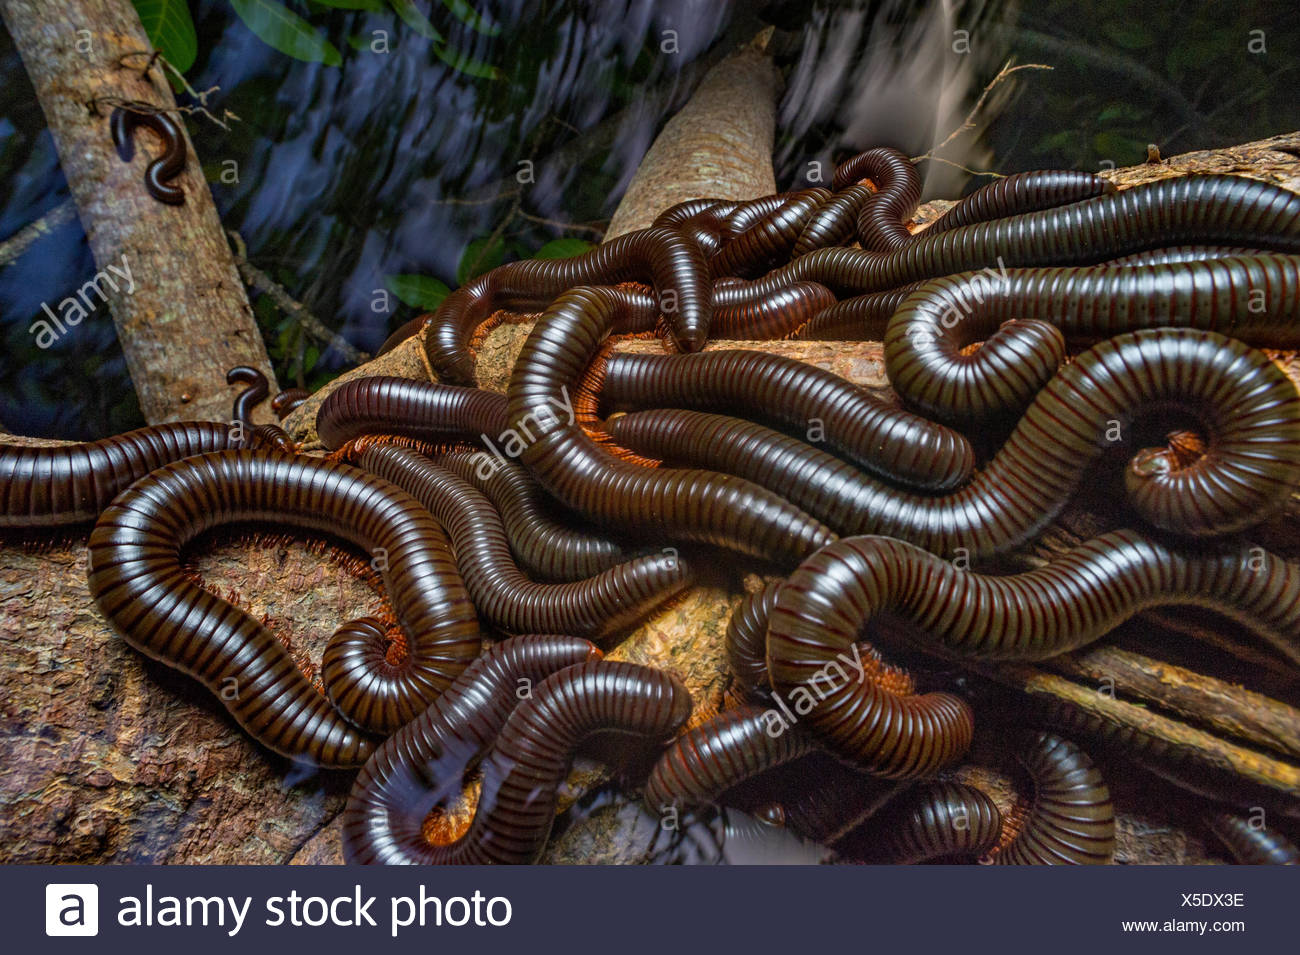 Giant millipedes, were threatened when rats reached the island resort of Fregate, cluster on a tree branch. - Stock Image